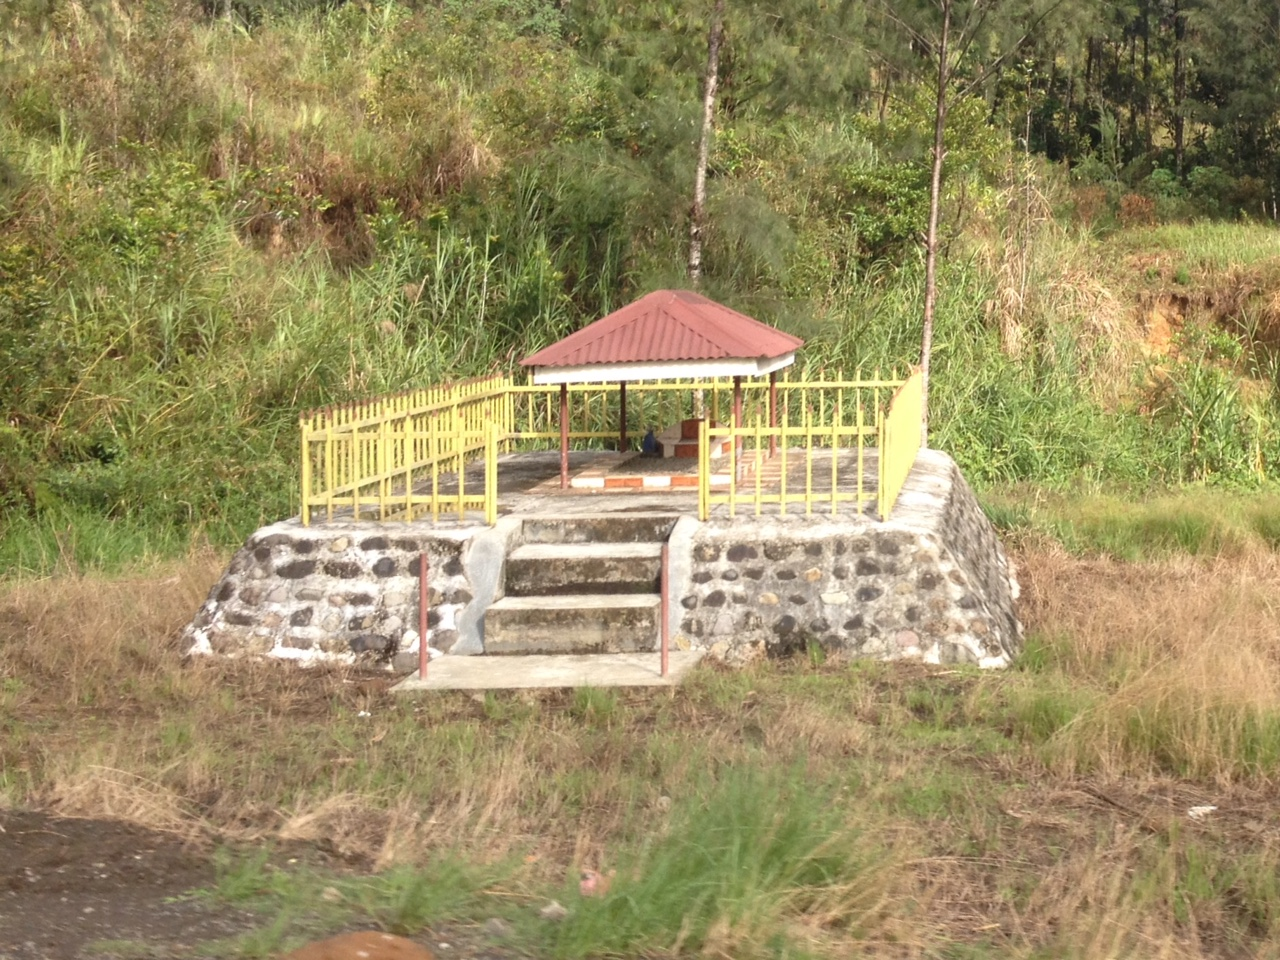 Individual graves like this one are common sights along the roadside. Some traditional beliefs include ancestors' spirits coming back and causing trouble if they aren't happy, so building them a nice home makes good sense.